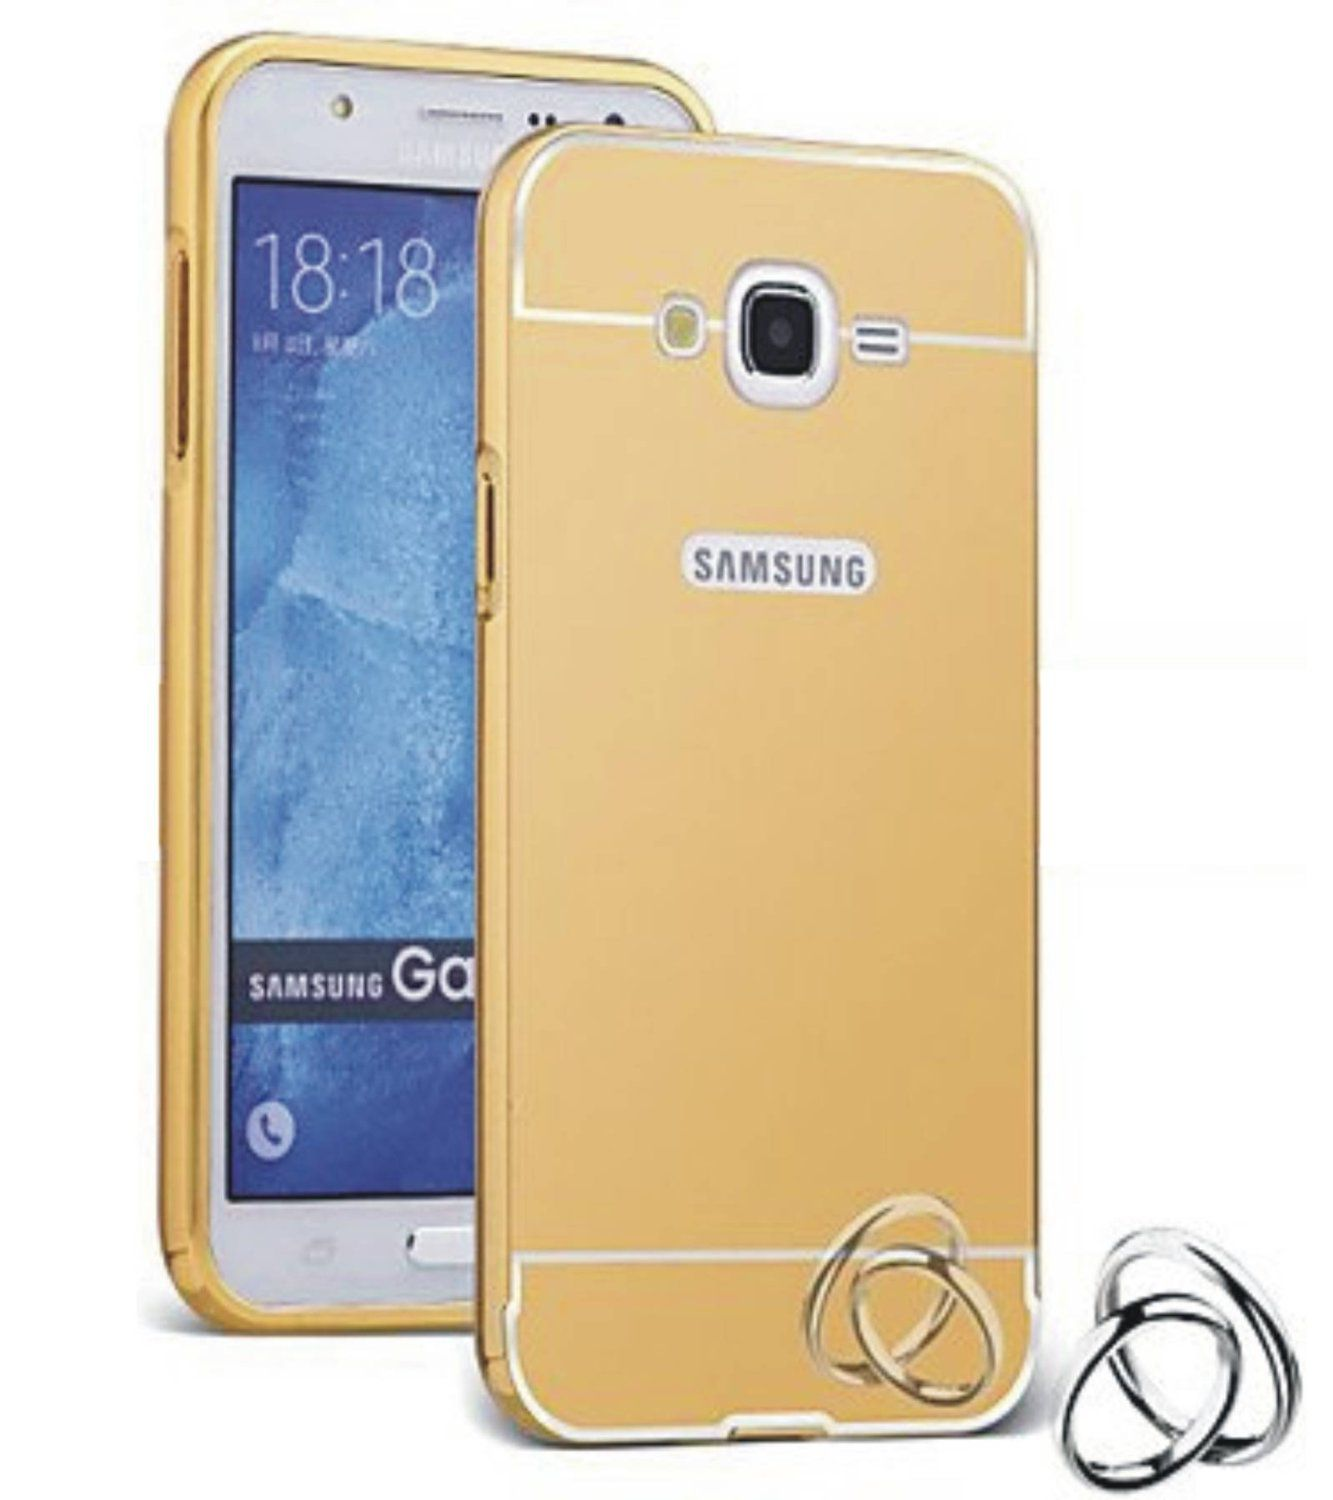 Mirror Back Cover For Samsung Galaxy j2 + Zipper earphone free by Style Crome.